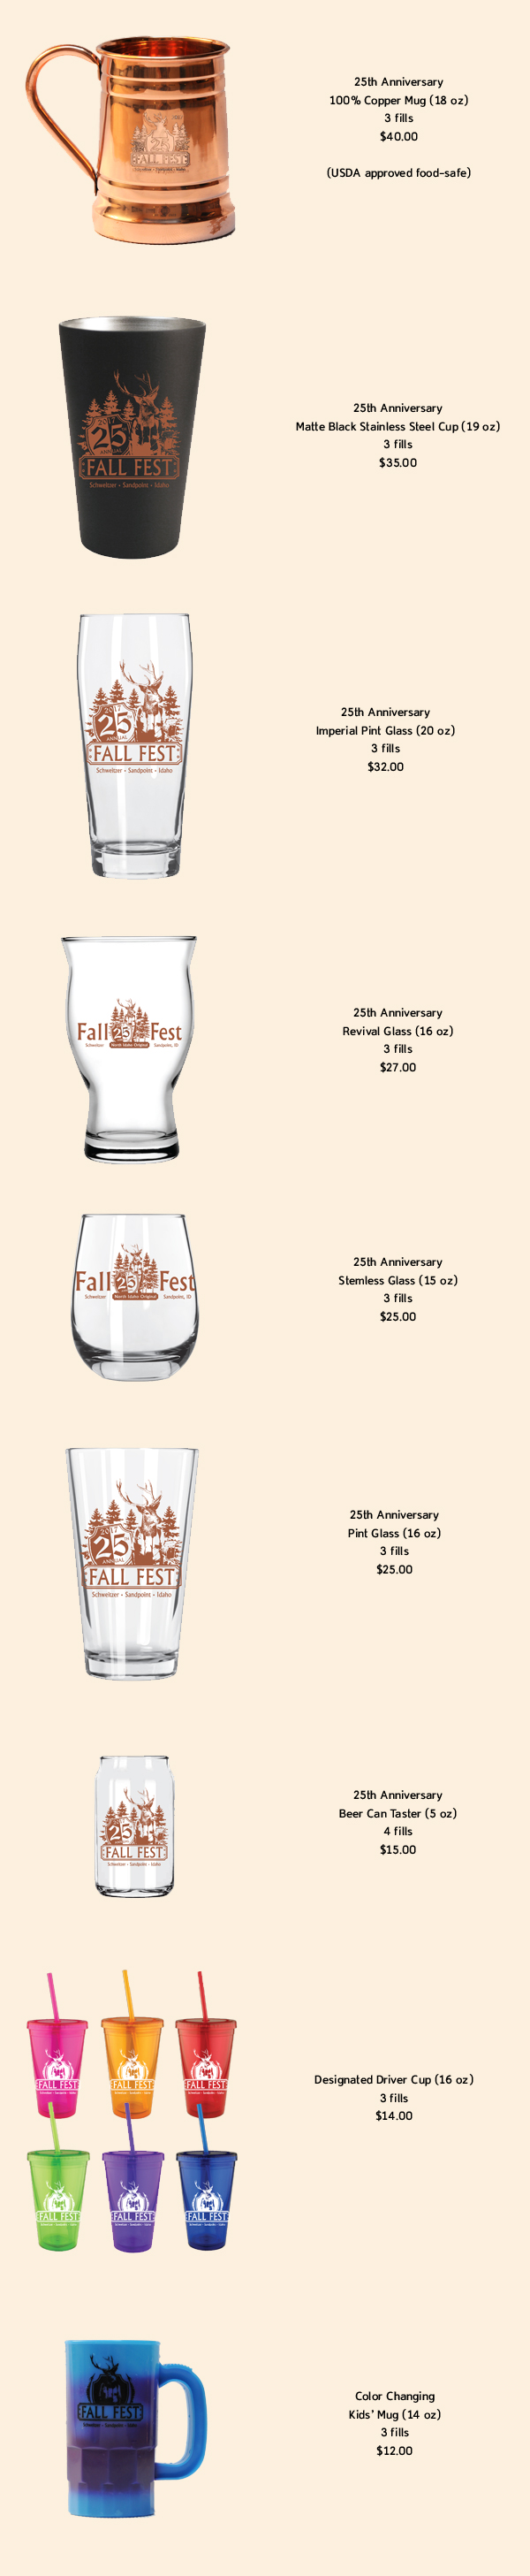 2017 Fall Fest glassware lineup